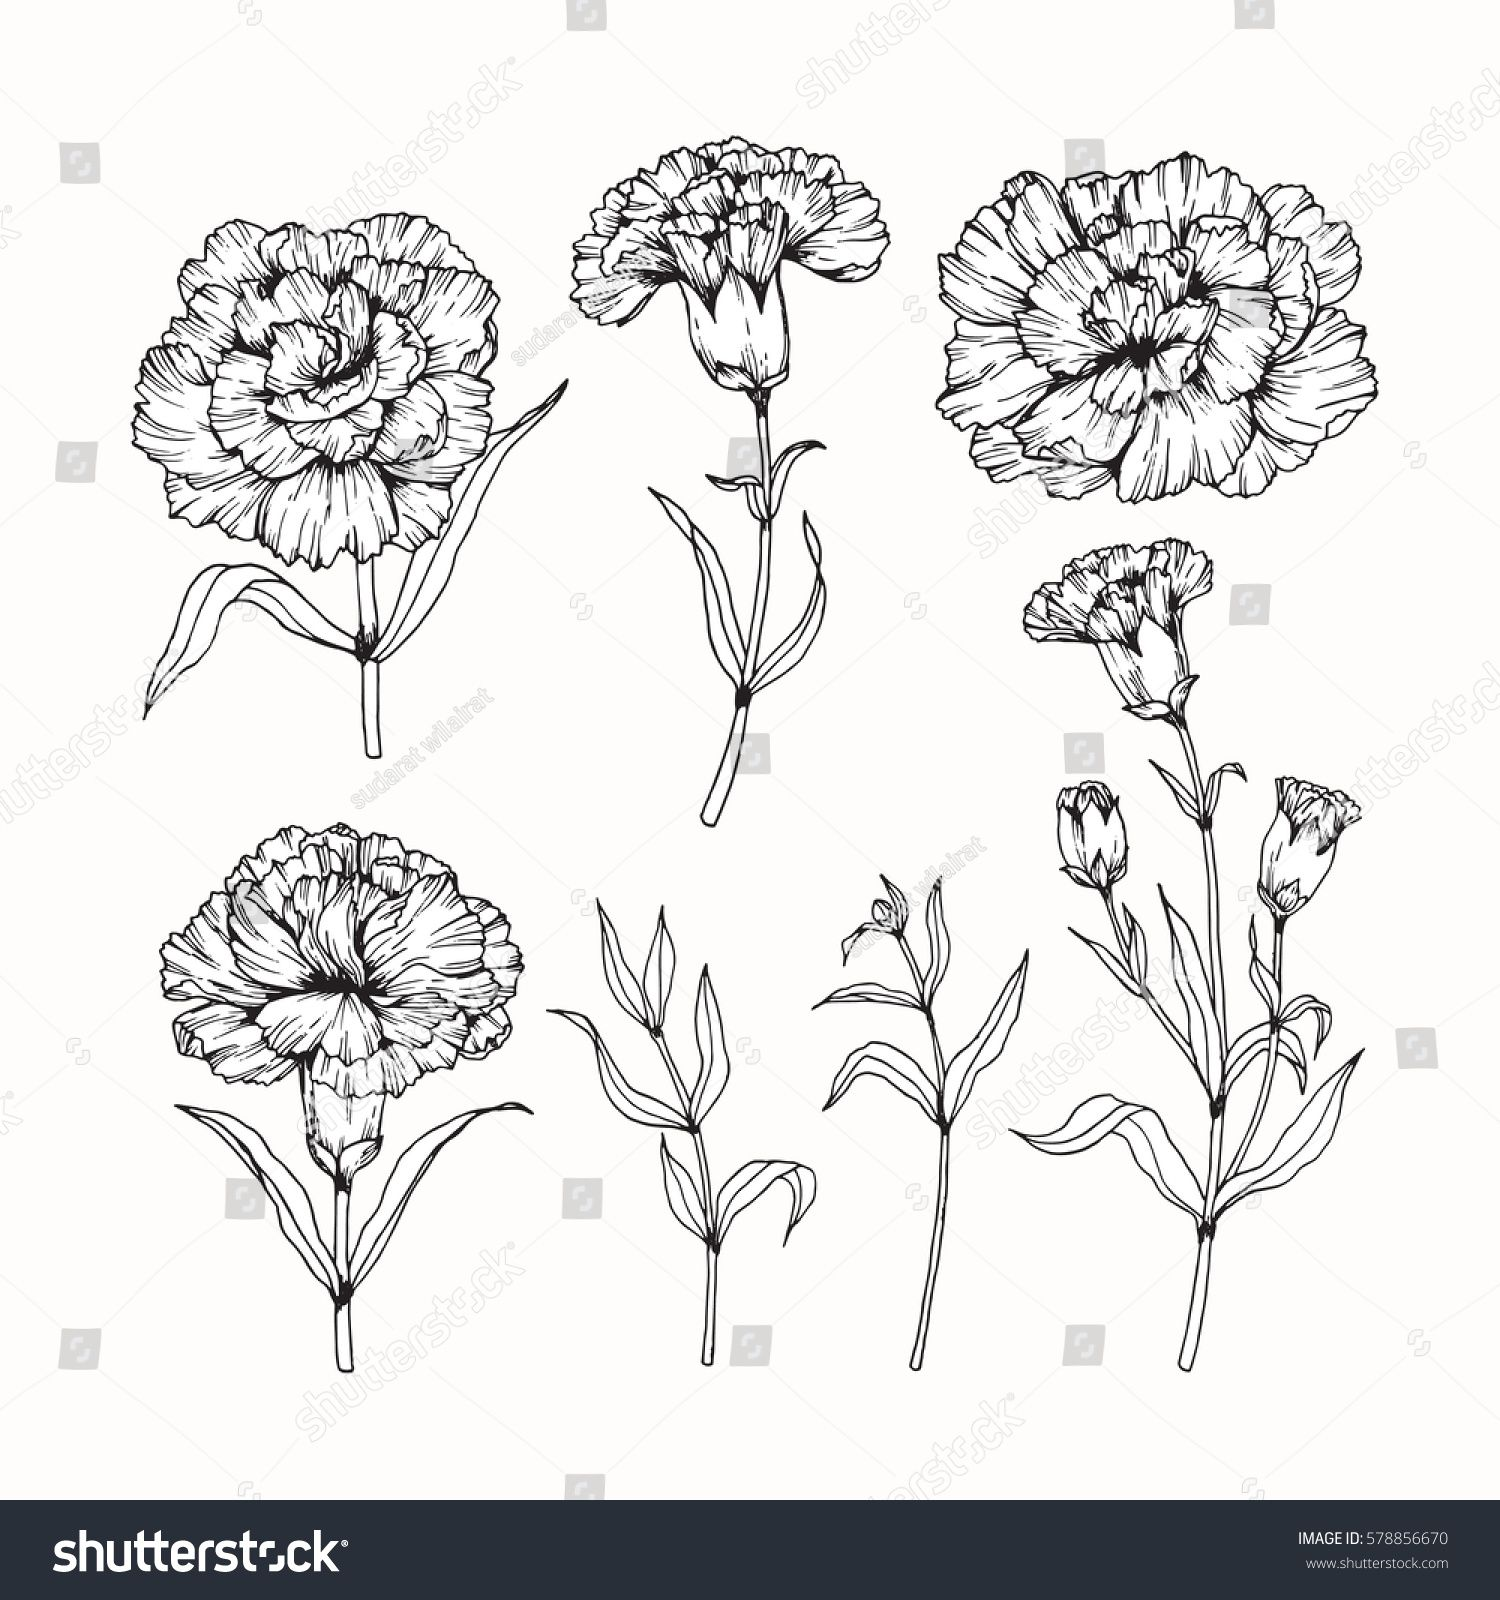 Vector Collection Set Of Carnation Flower By Hand Drawing On White Backgrounds Carnation Flower Tattoo Carnation Tattoo Flower Drawing